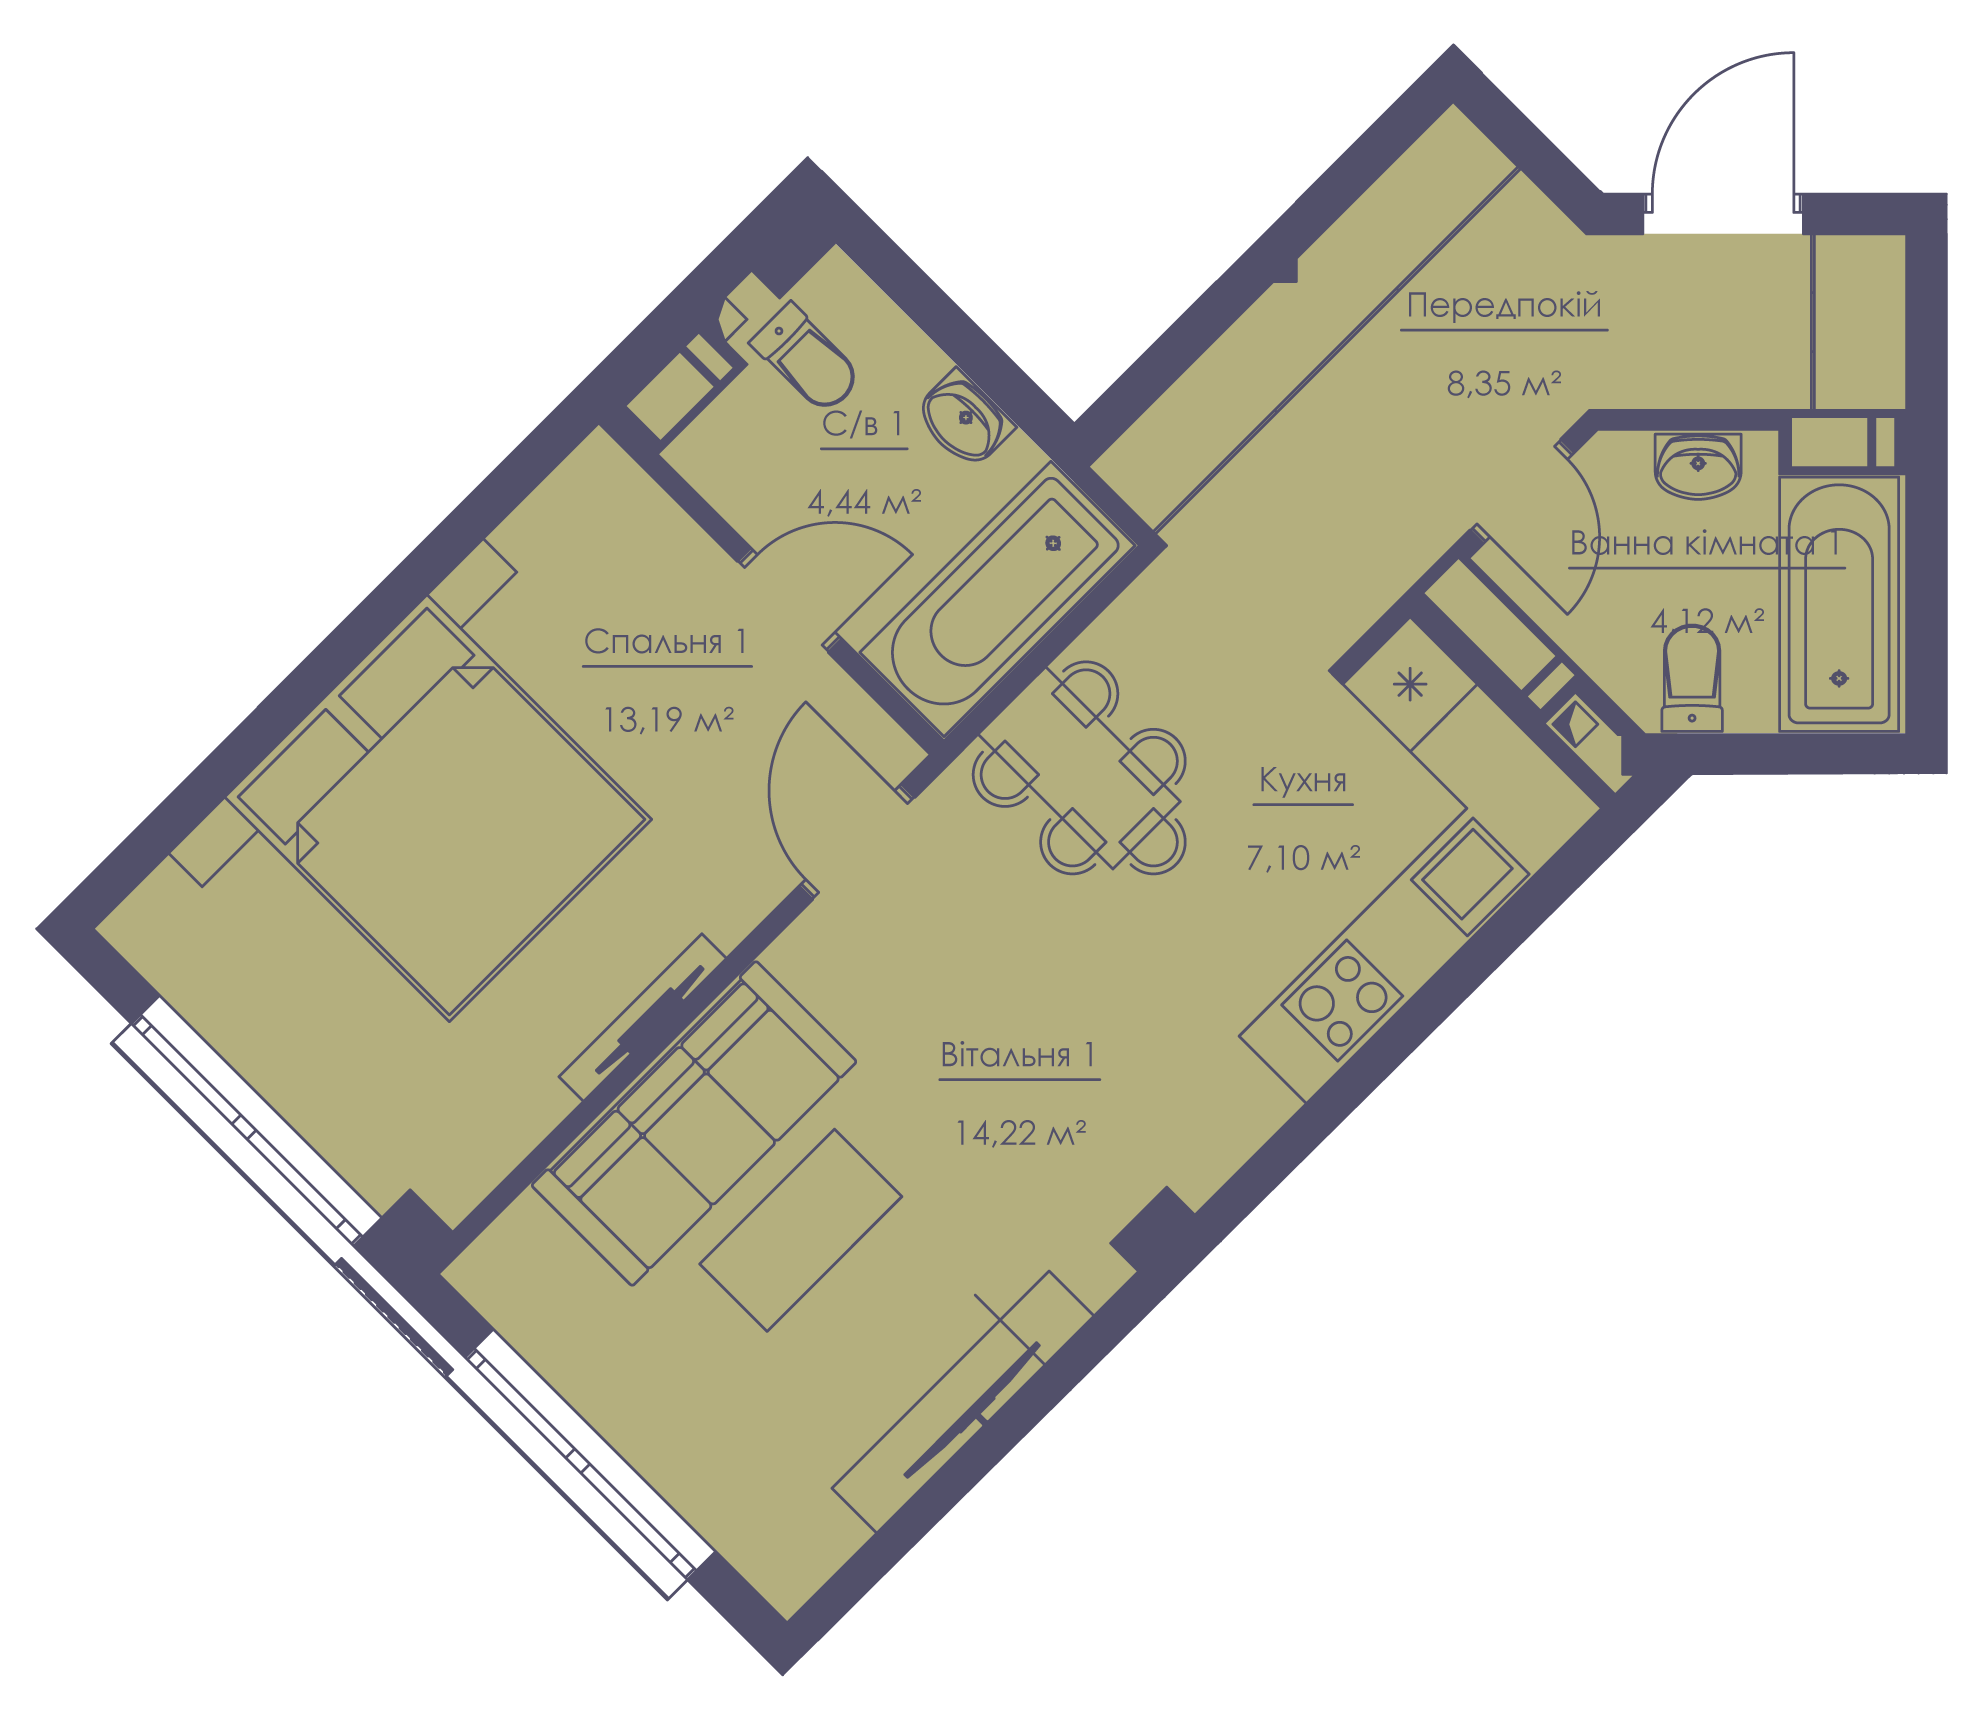 Apartment layout KV_3_1.2m_1_1_3-1